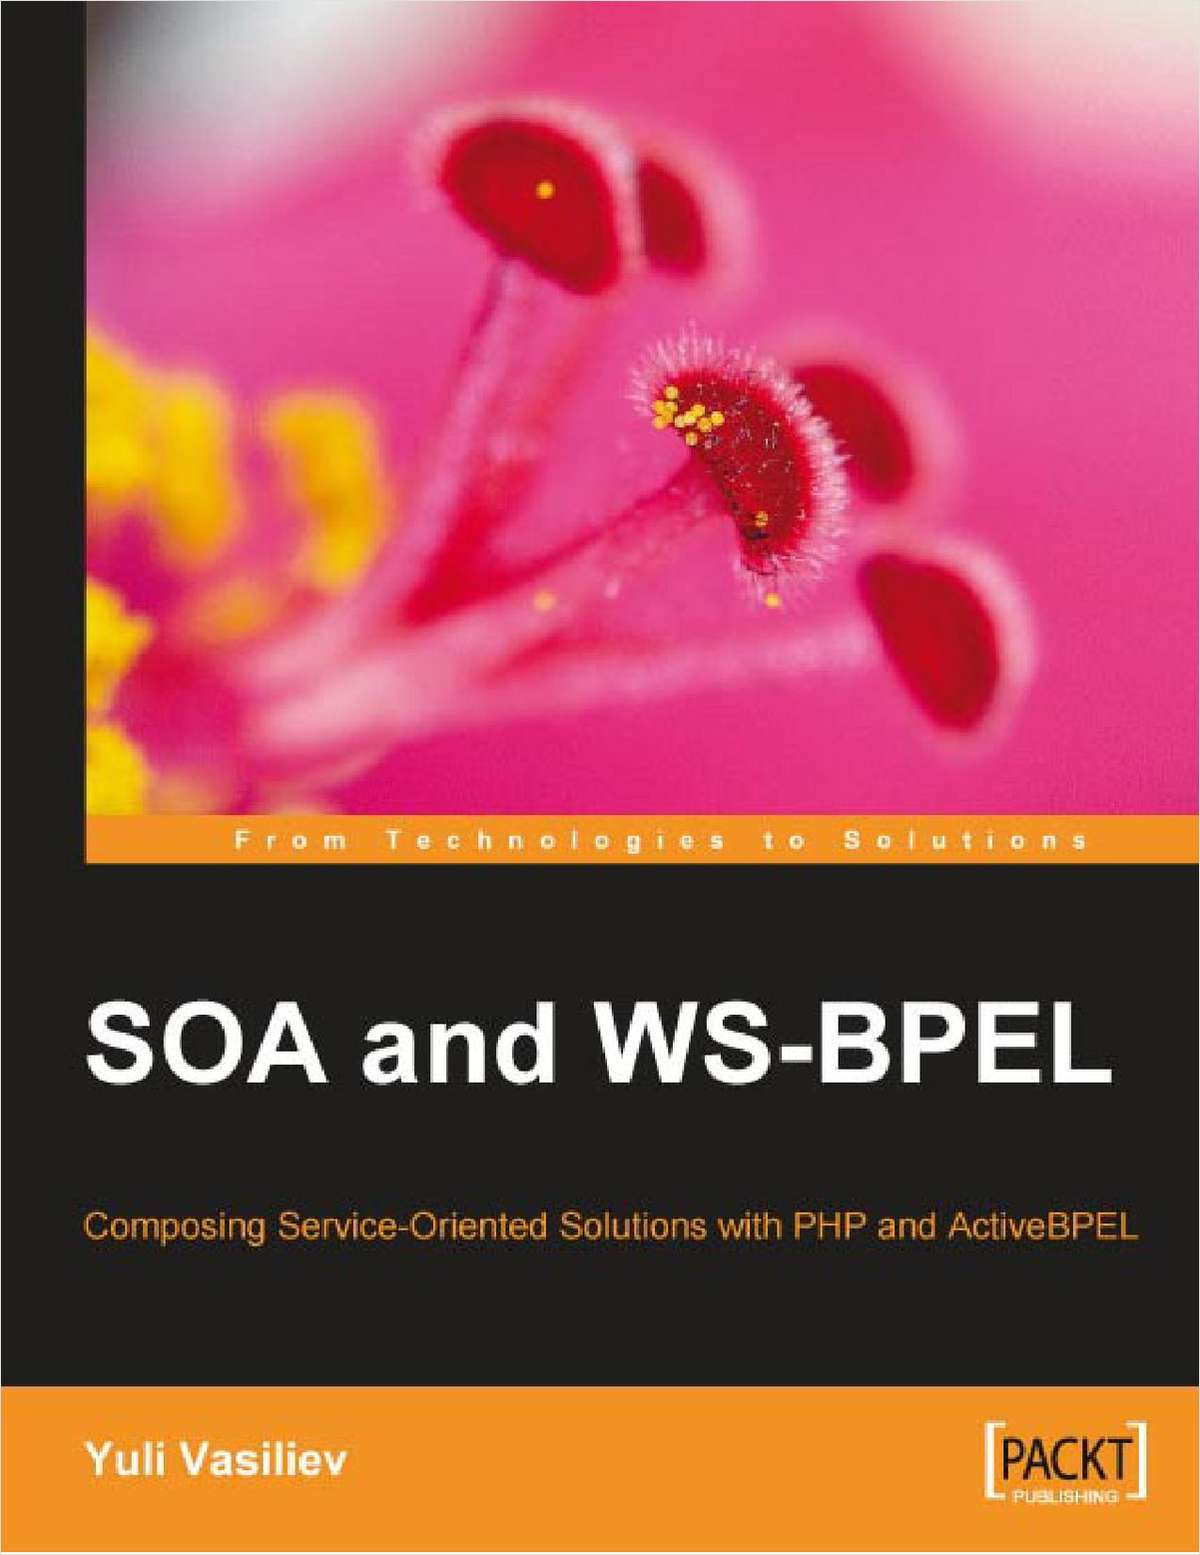 SOA and WS-BPEL: Free 316 Page eBook